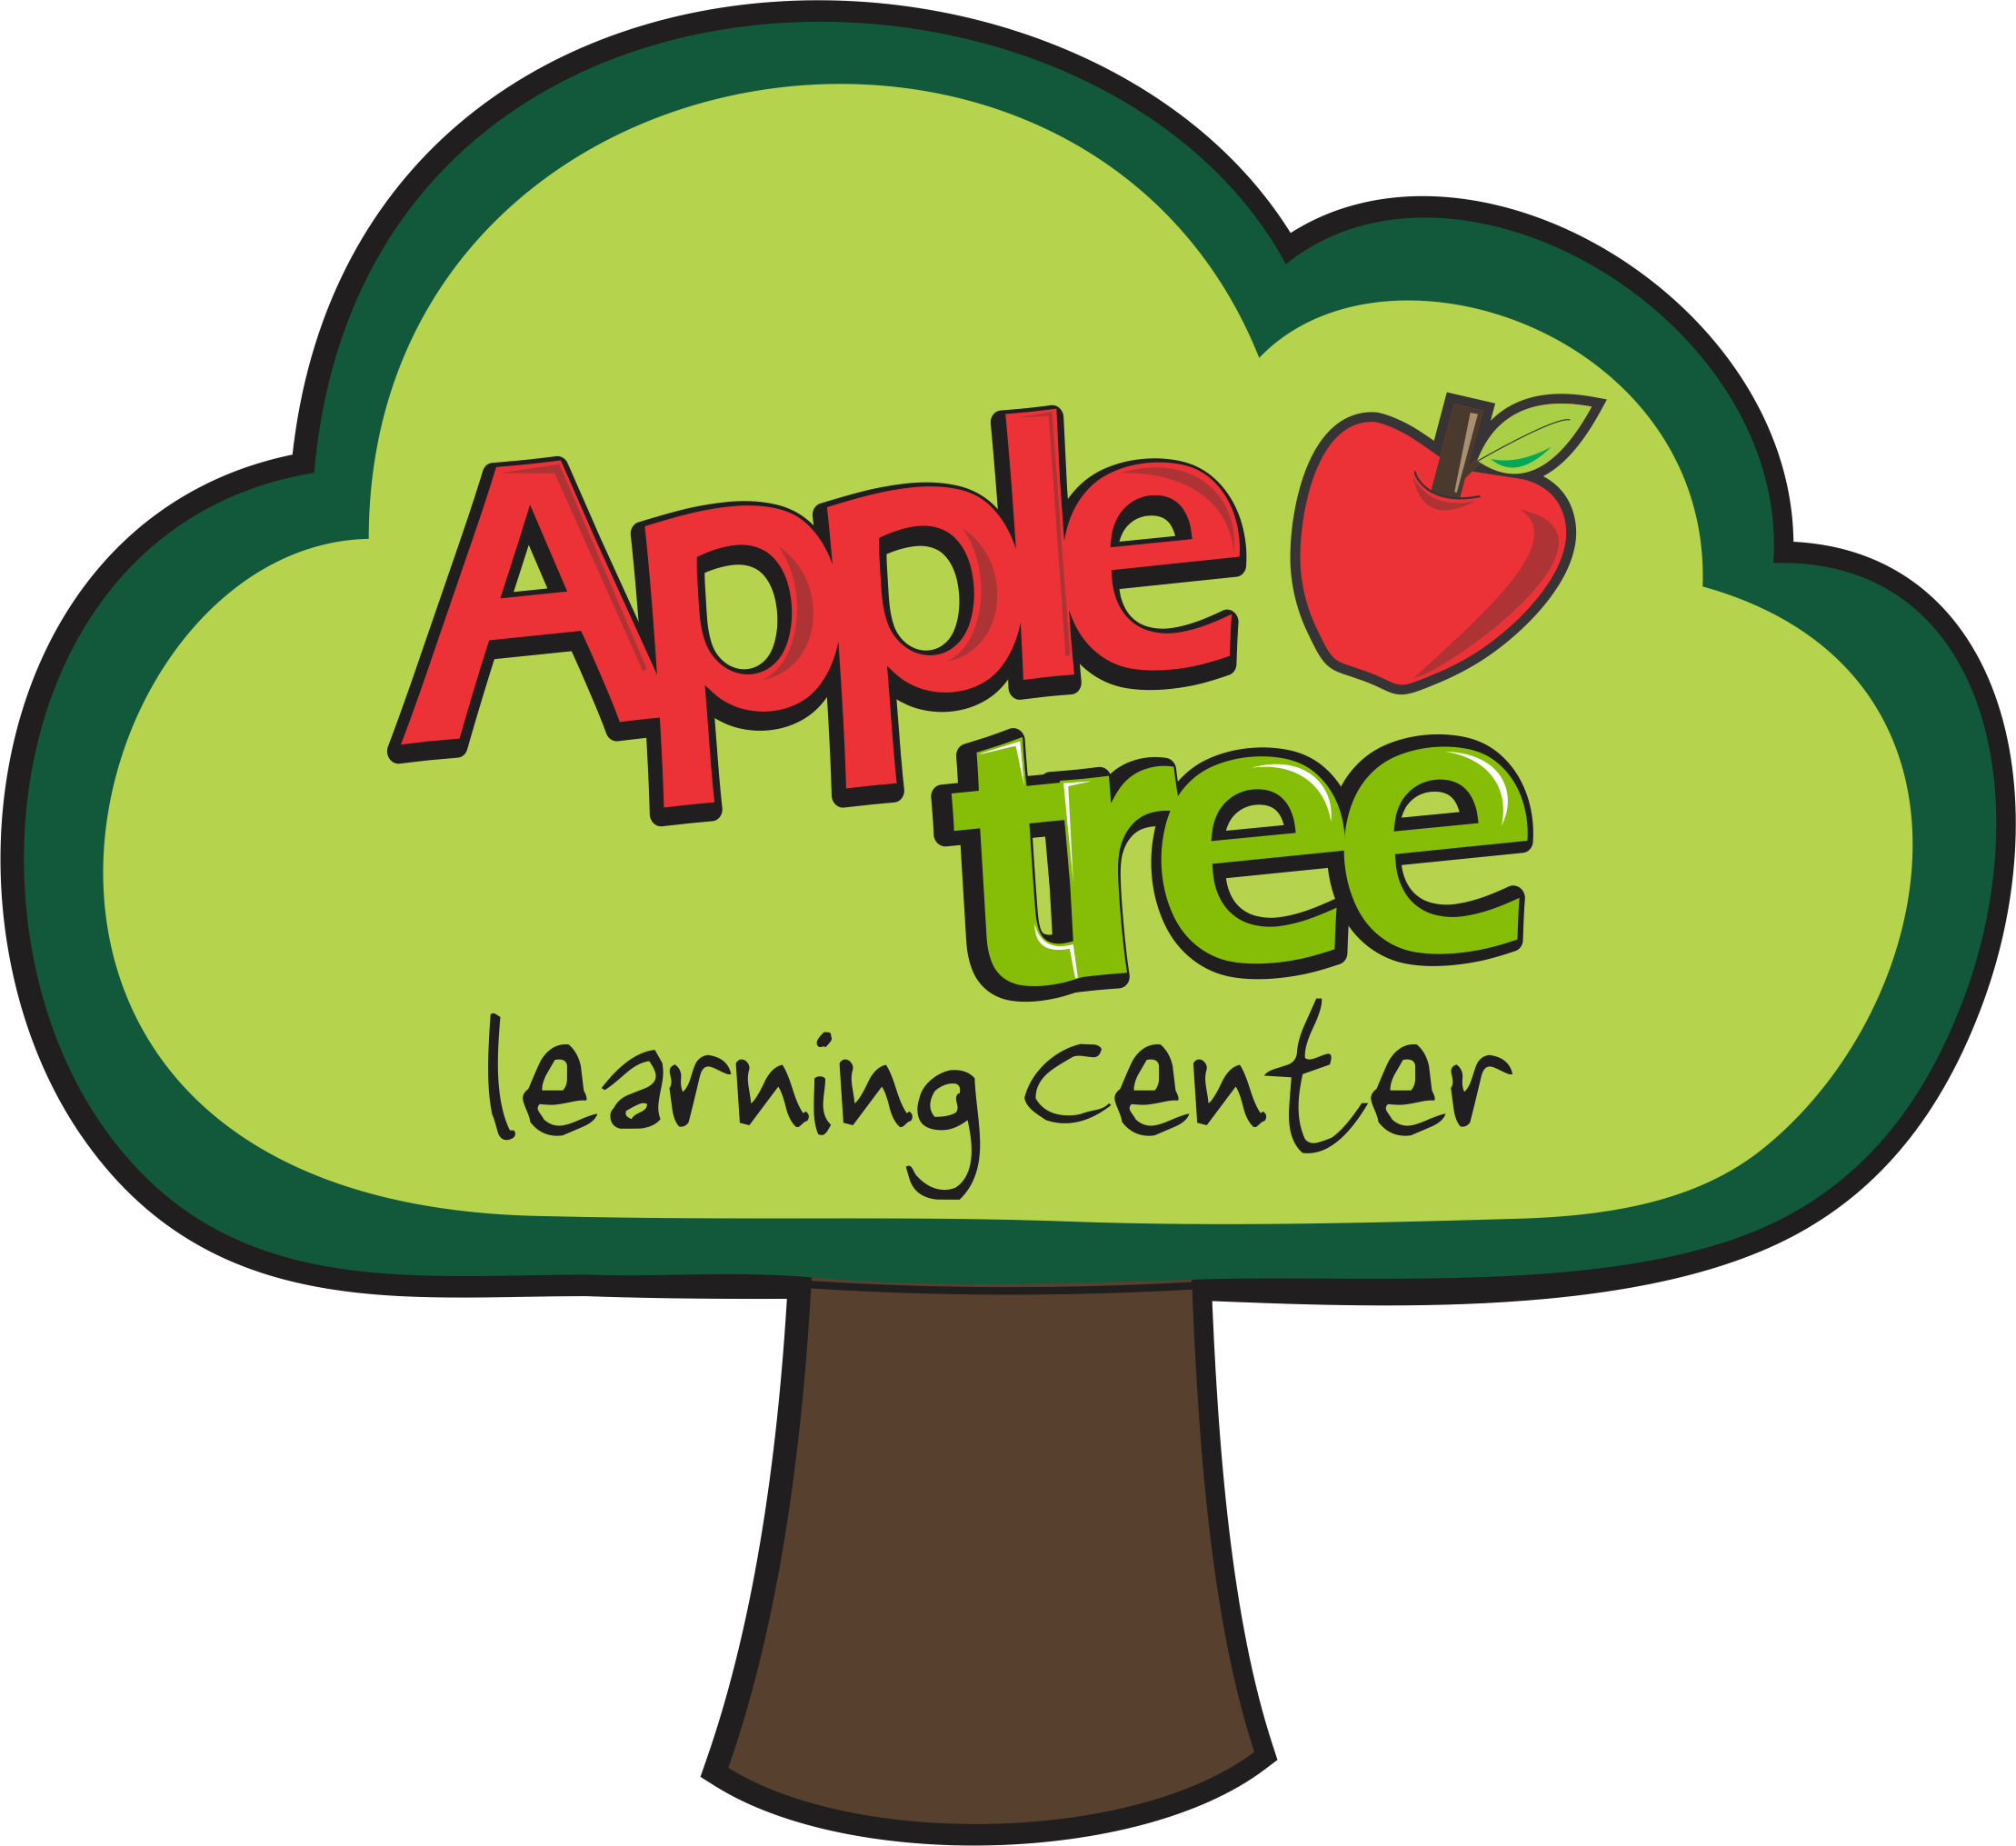 Apple Tree Learning Center Querétaro - Querétaro